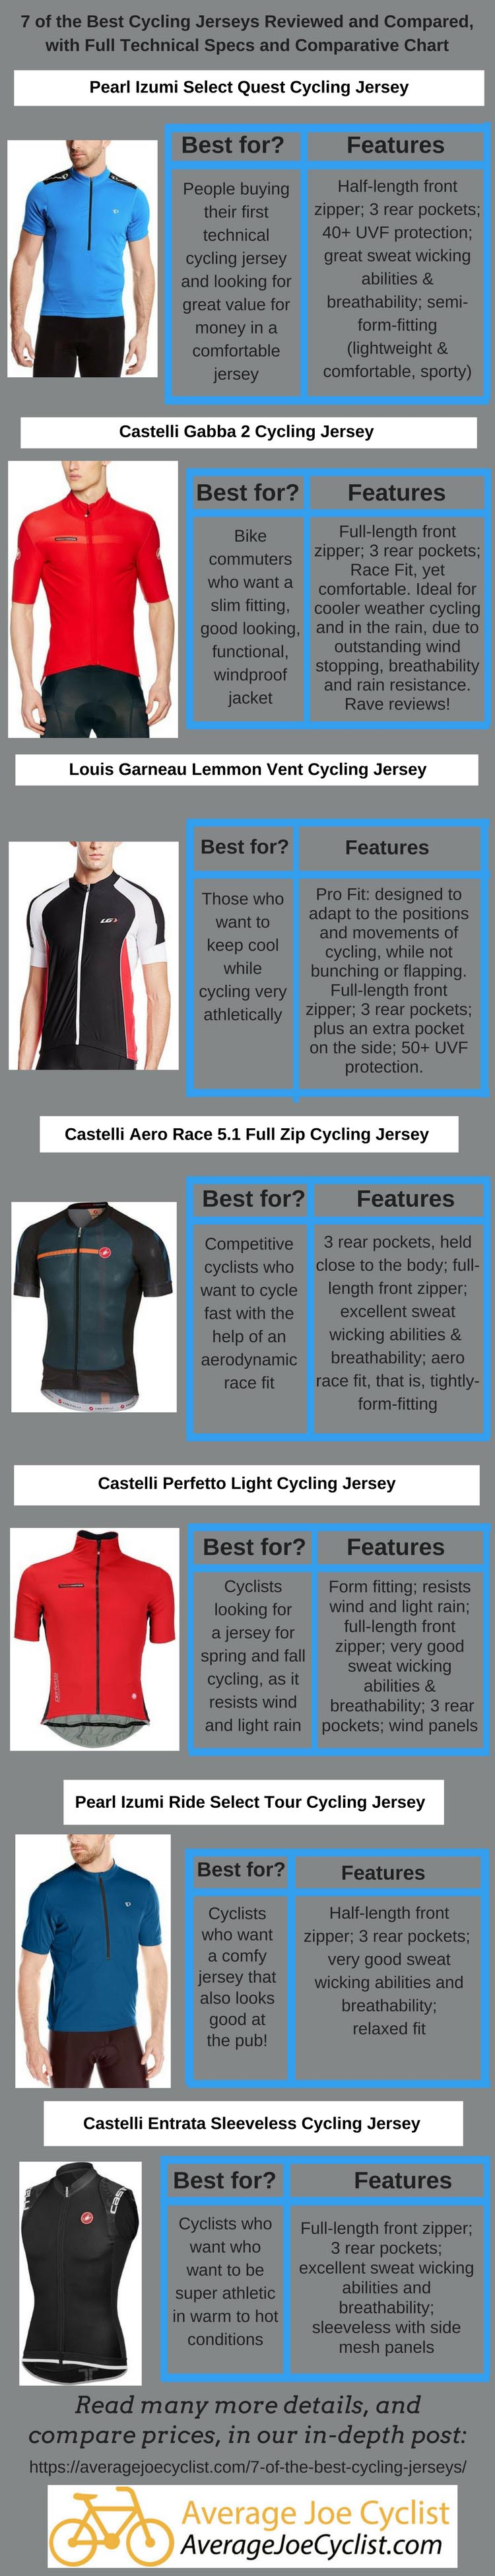 07869276c 7 of the best cycling jerseys — How to pick the best cycling jersey